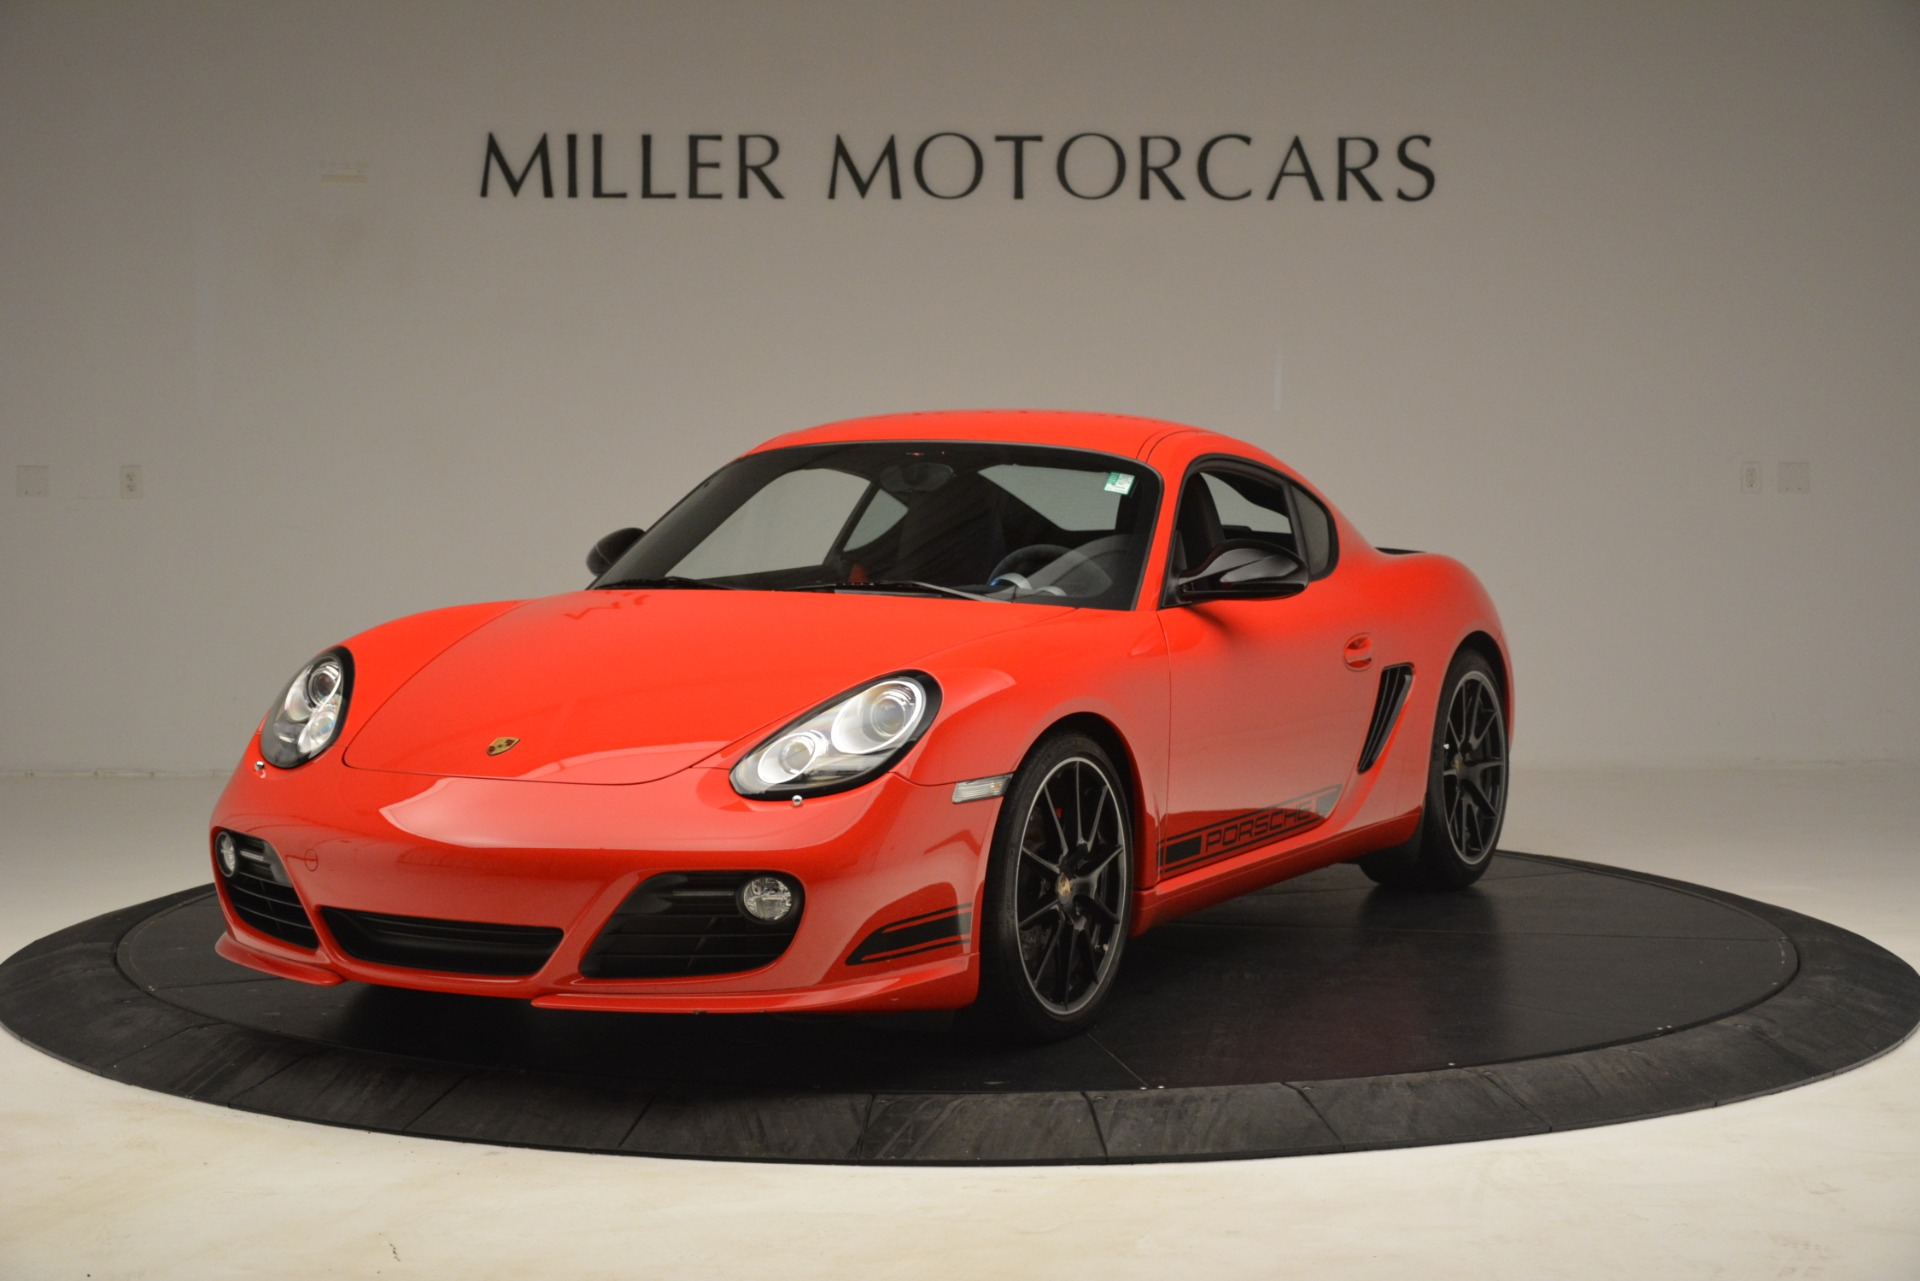 Used 2012 Porsche Cayman R for sale Sold at McLaren Greenwich in Greenwich CT 06830 1